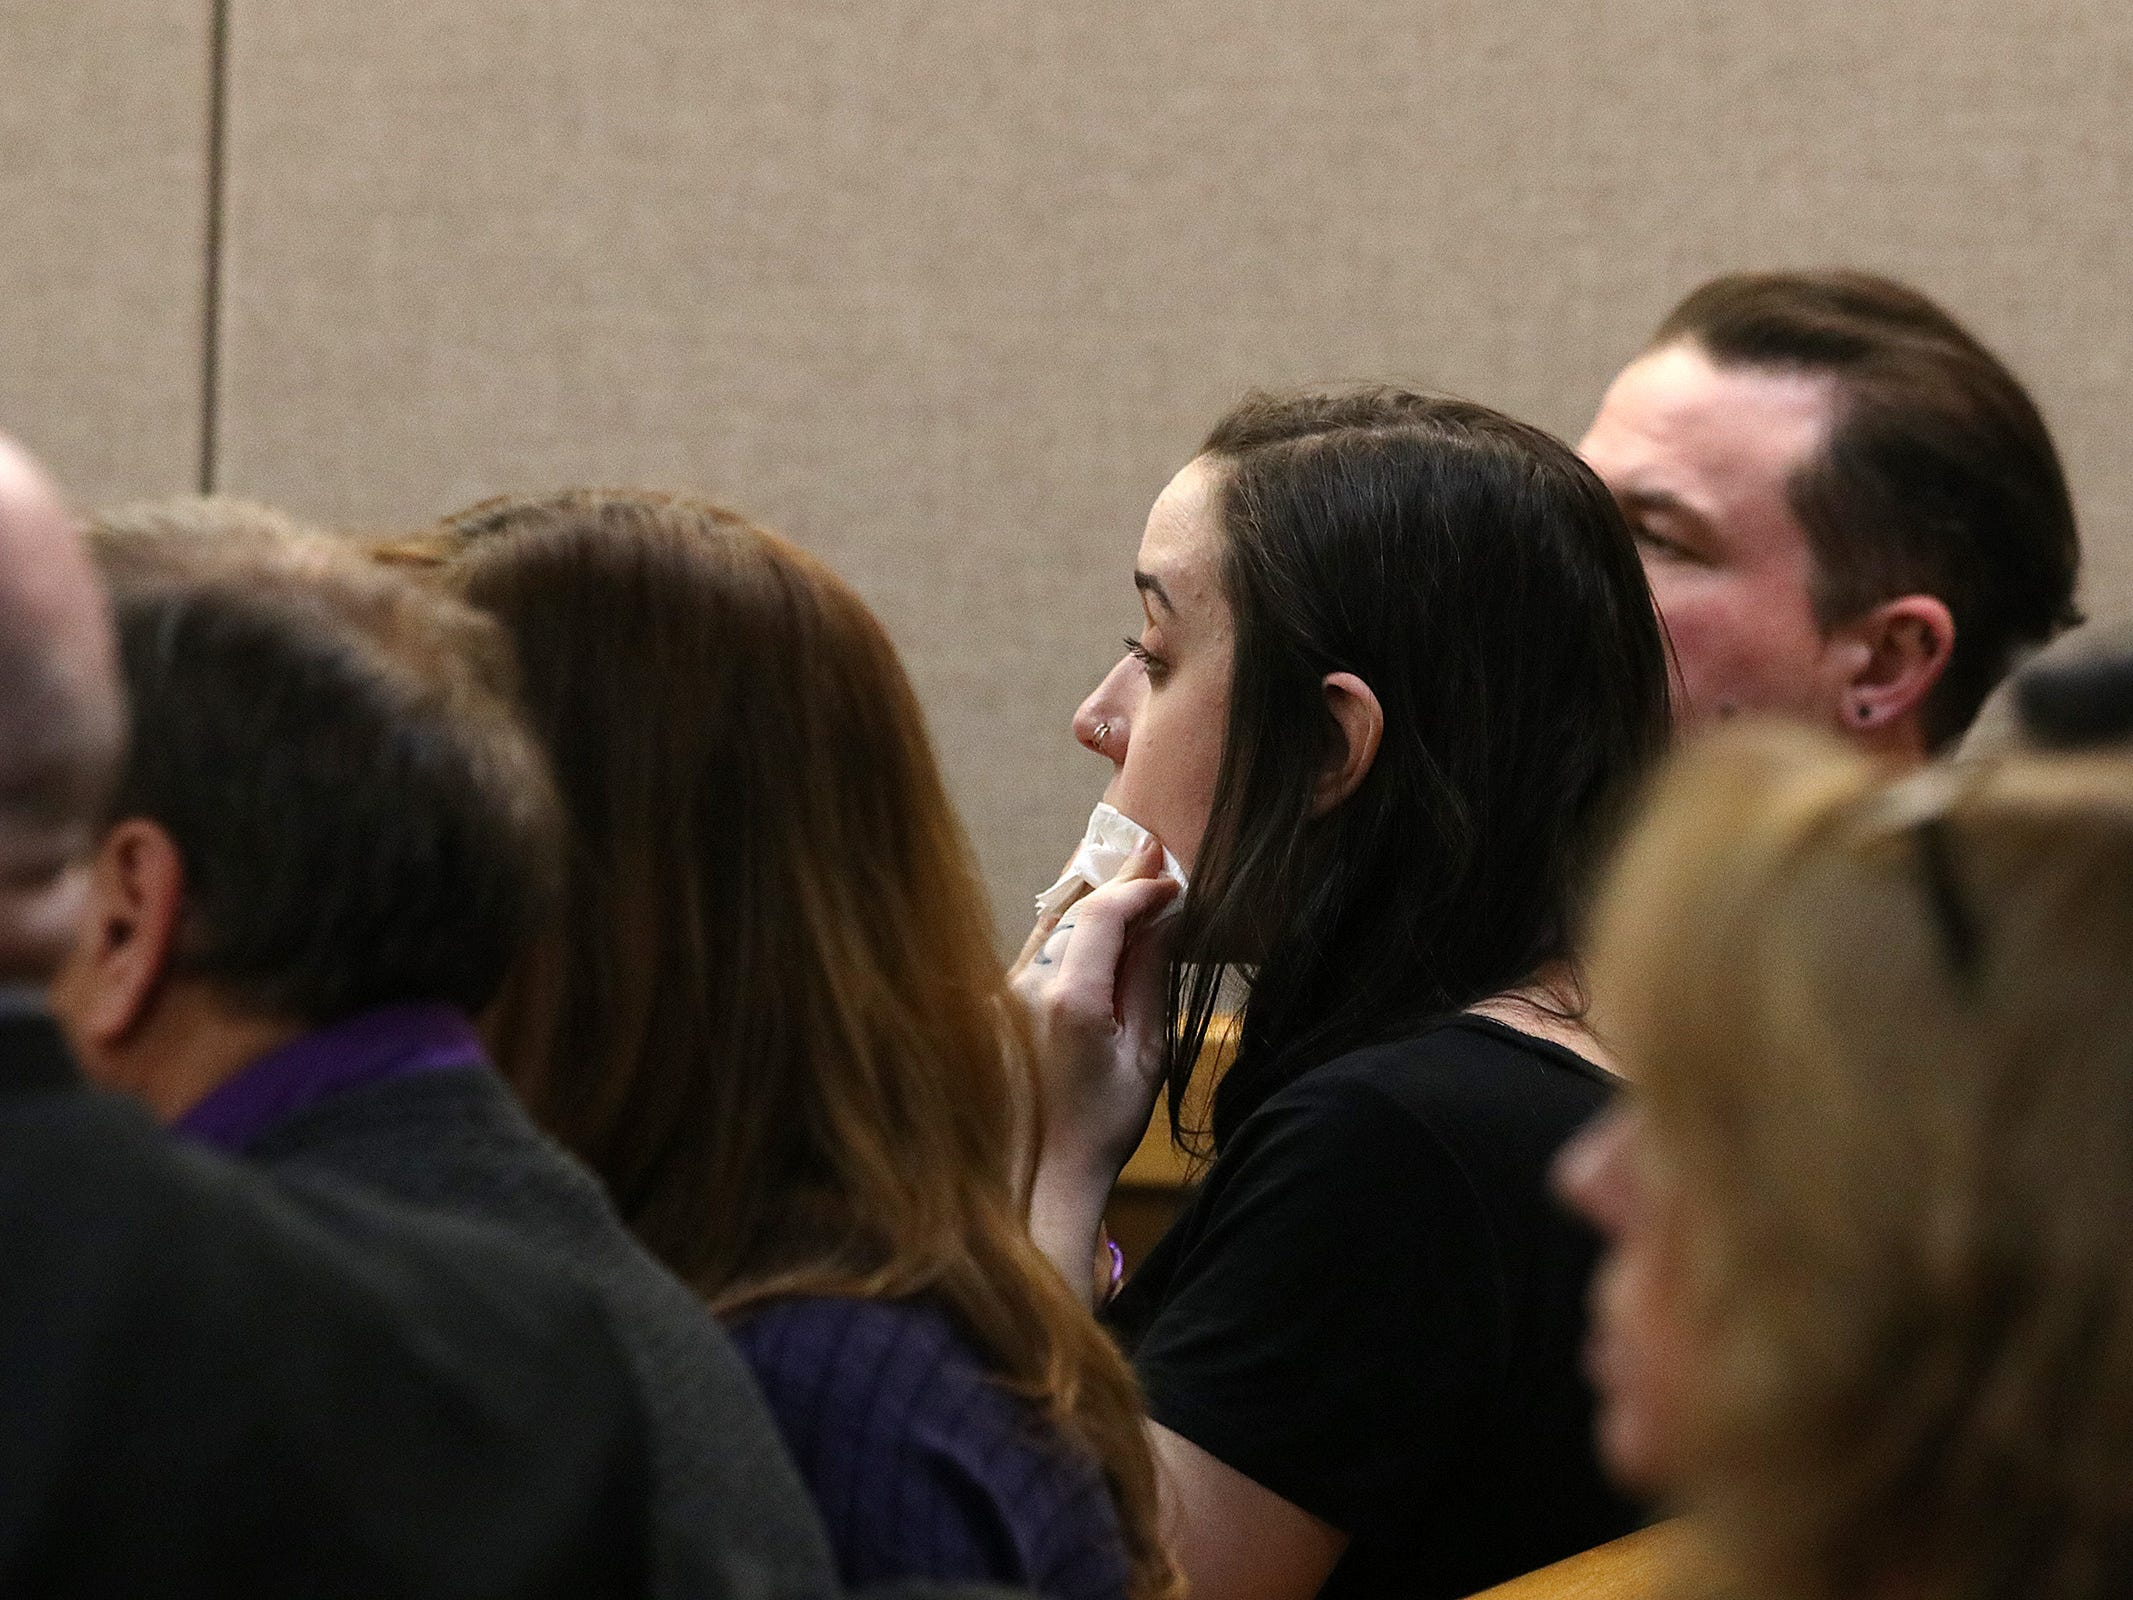 Friends and family members of Sarah Stern react as the jury finds Liam McAtasney, who is charged with the murder of former high school classmate, Sarah Stern, guilty on all charges before Superior Court Judge Richard W. English at the Monmouth County Courthouse in Freehold, NJ Tuesday, February 26, 2019.